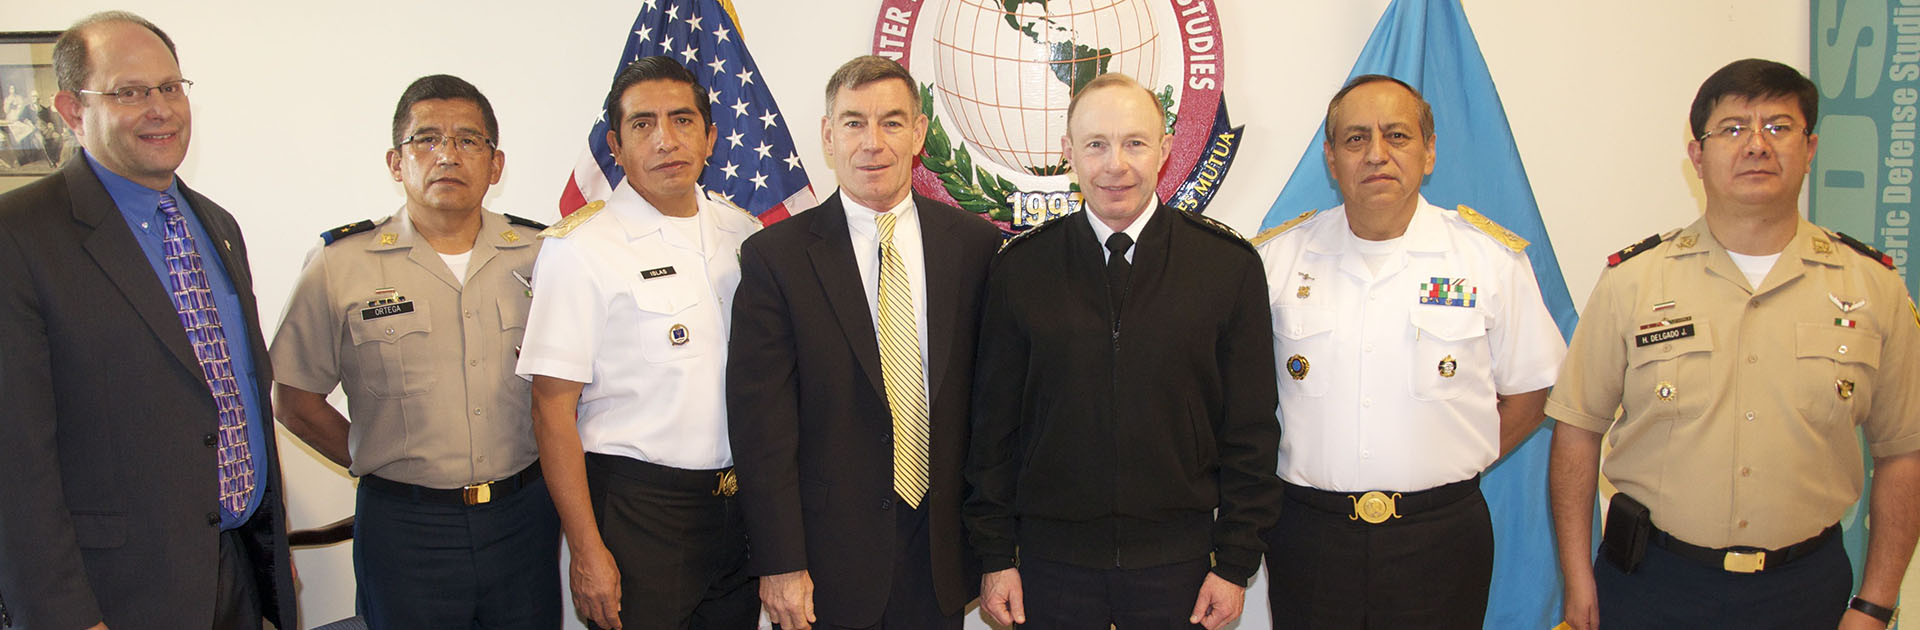 Delegation of Mexican officers with Dr. Richard D. Downie, Director CHDS and General Charles H. Jacoby, Jr., Commander North American Aerospace Defense Command and United States Northern Command (NORAD and USNORTHCOM)